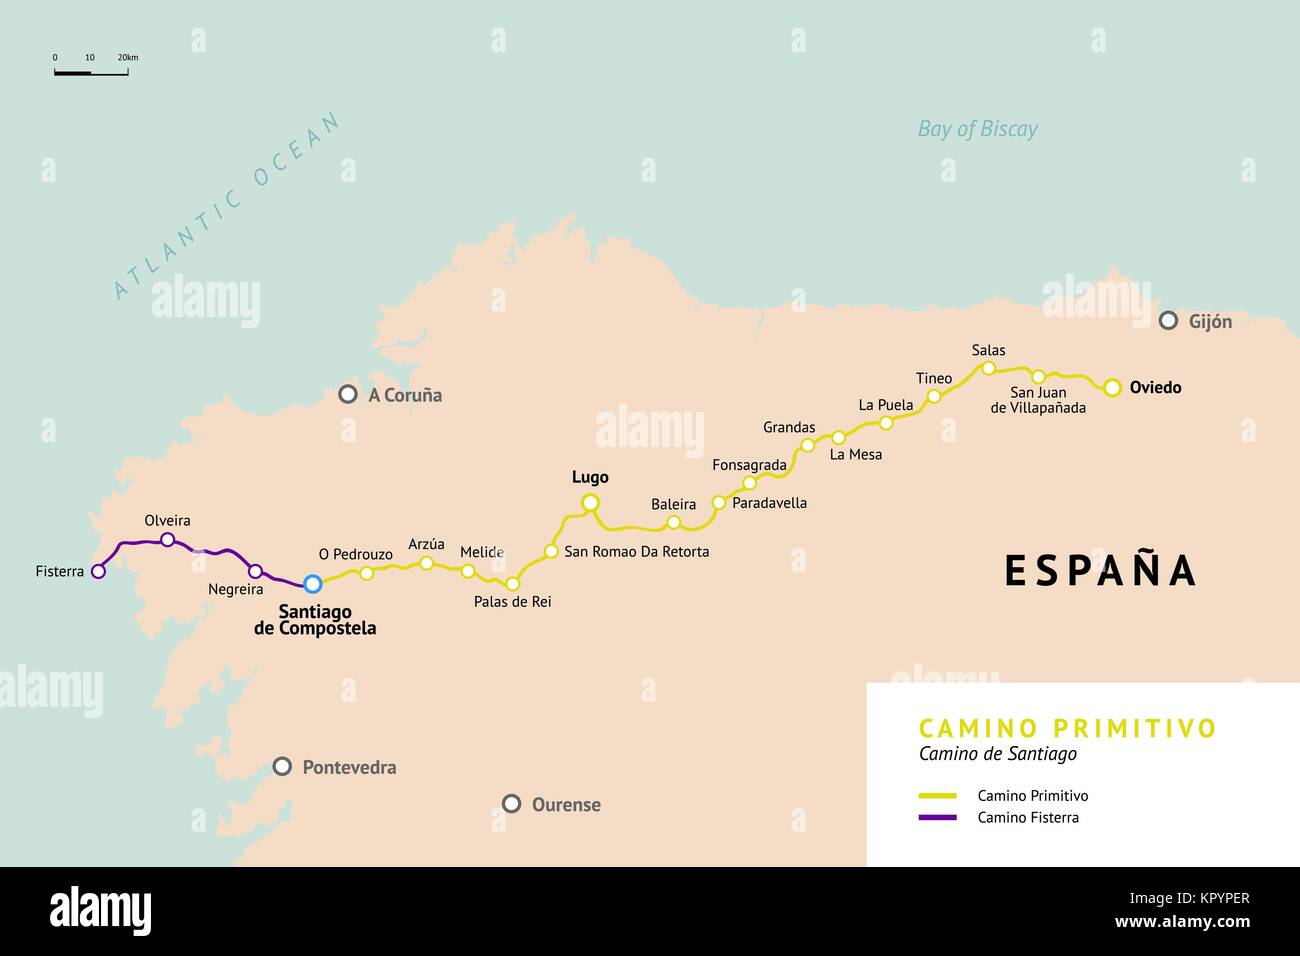 Camino Primitivo map  Original route from Oviedo  Camino De Santiago     Camino Primitivo map  Original route from Oviedo  Camino De Santiago or The  Way of St James  Ancient pilgrimage path to the Santiago de Compostella on